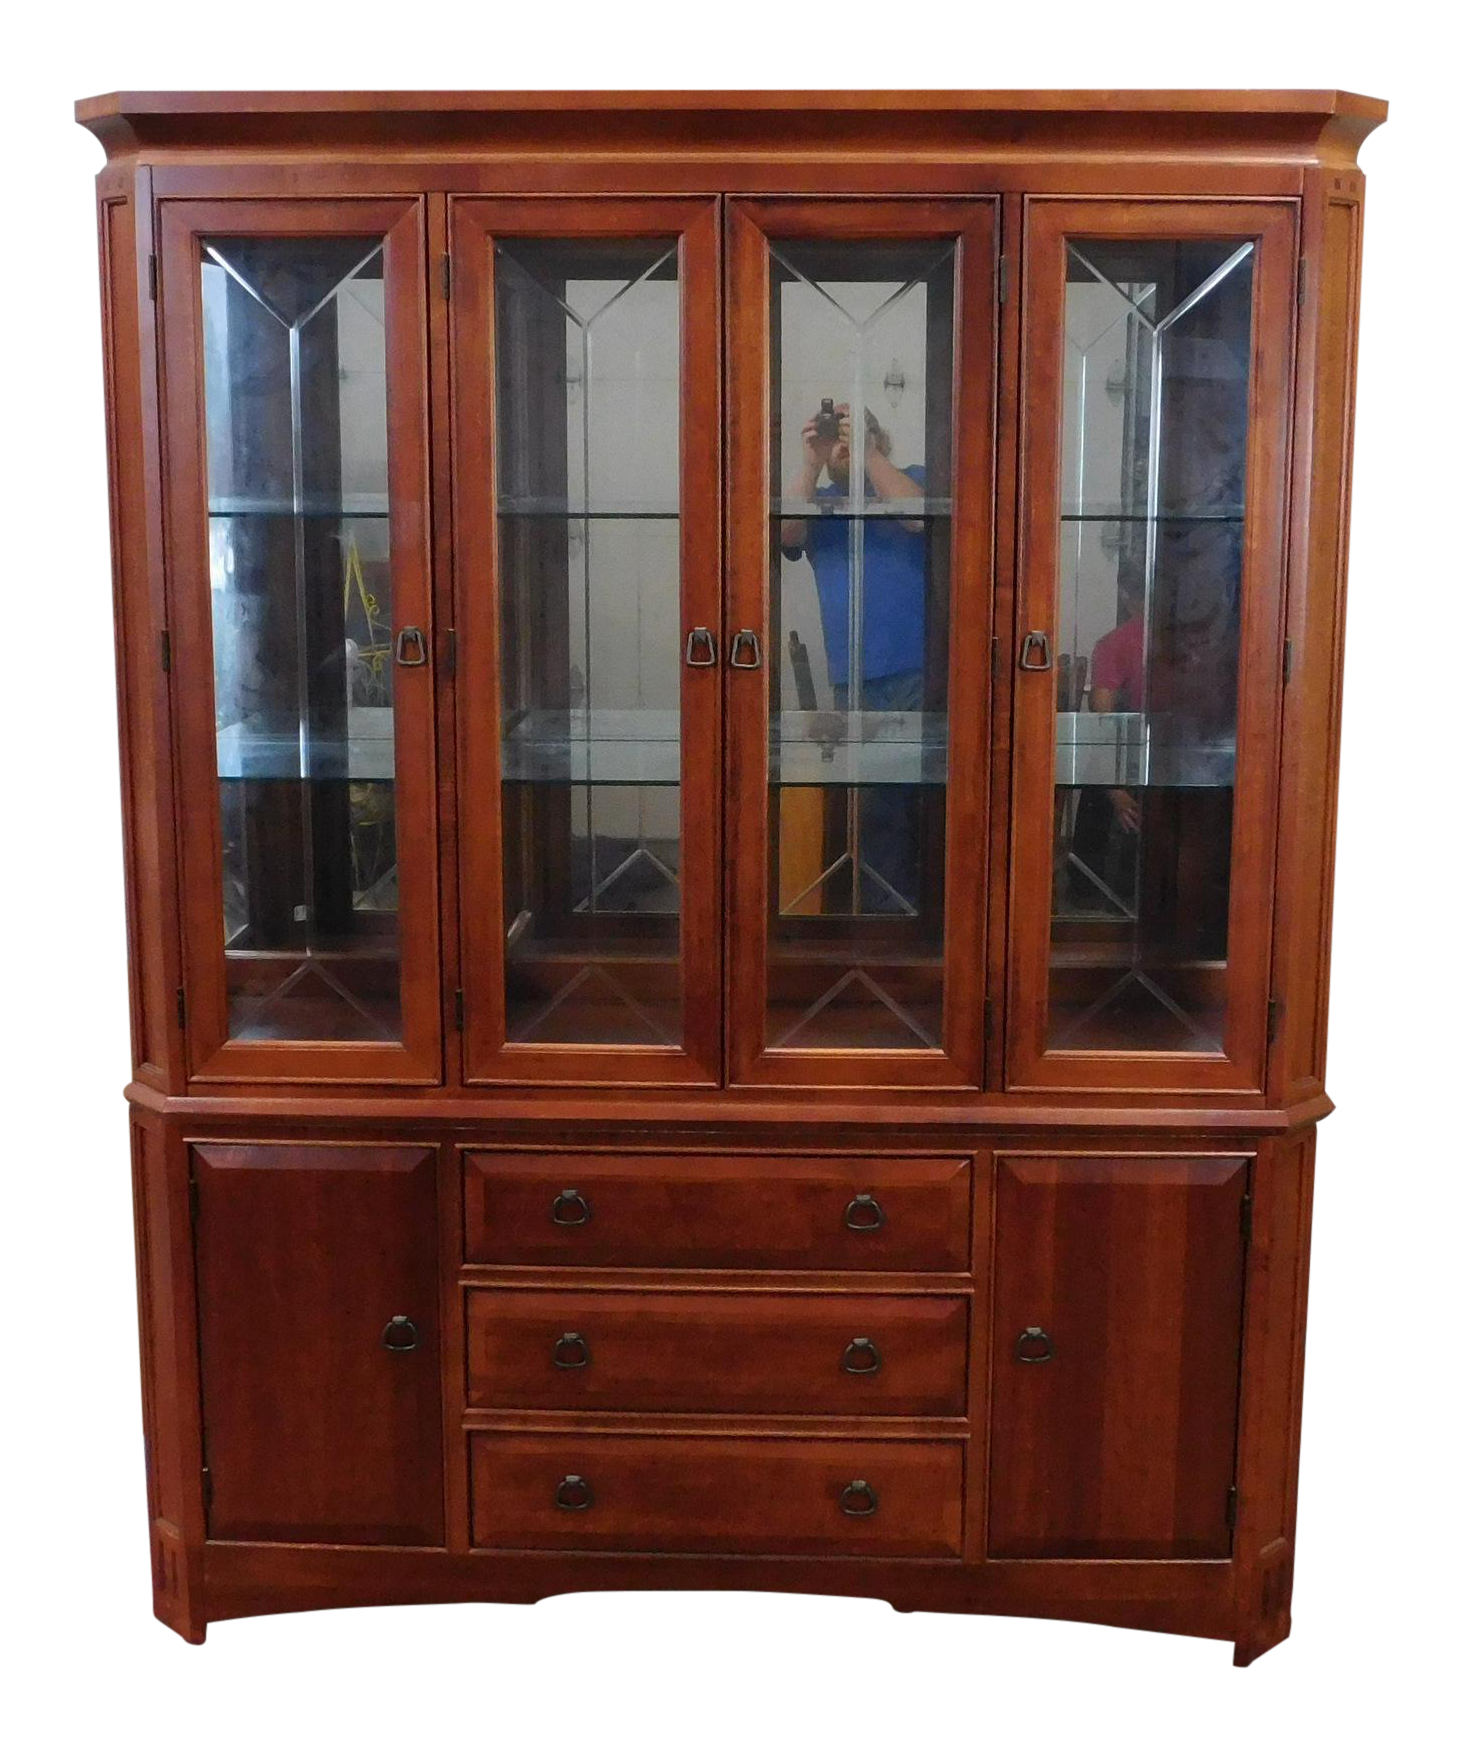 Thomasville furniture cherry mission style china cabinet for Thomasville american expressions bedroom furniture